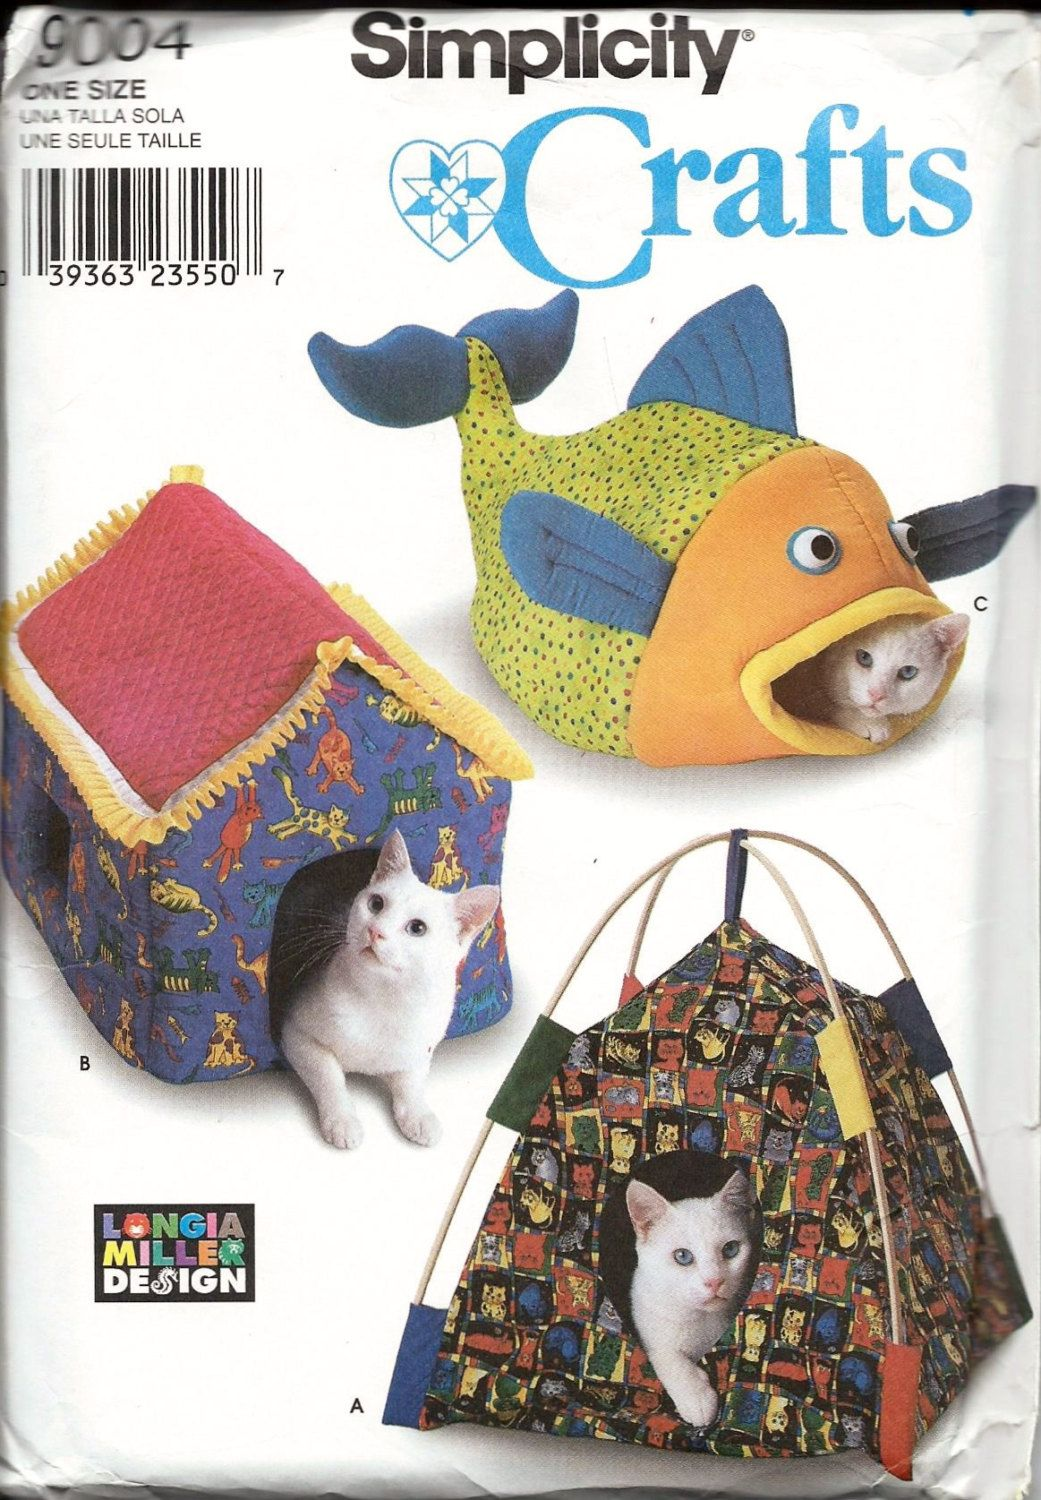 Simplicity 9004 cat bed sewing pattern fish tent house homes for simplicity 9004 cat bed sewing pattern fish tent house homes for cats uncut ff by vintagepatternstore jeuxipadfo Gallery